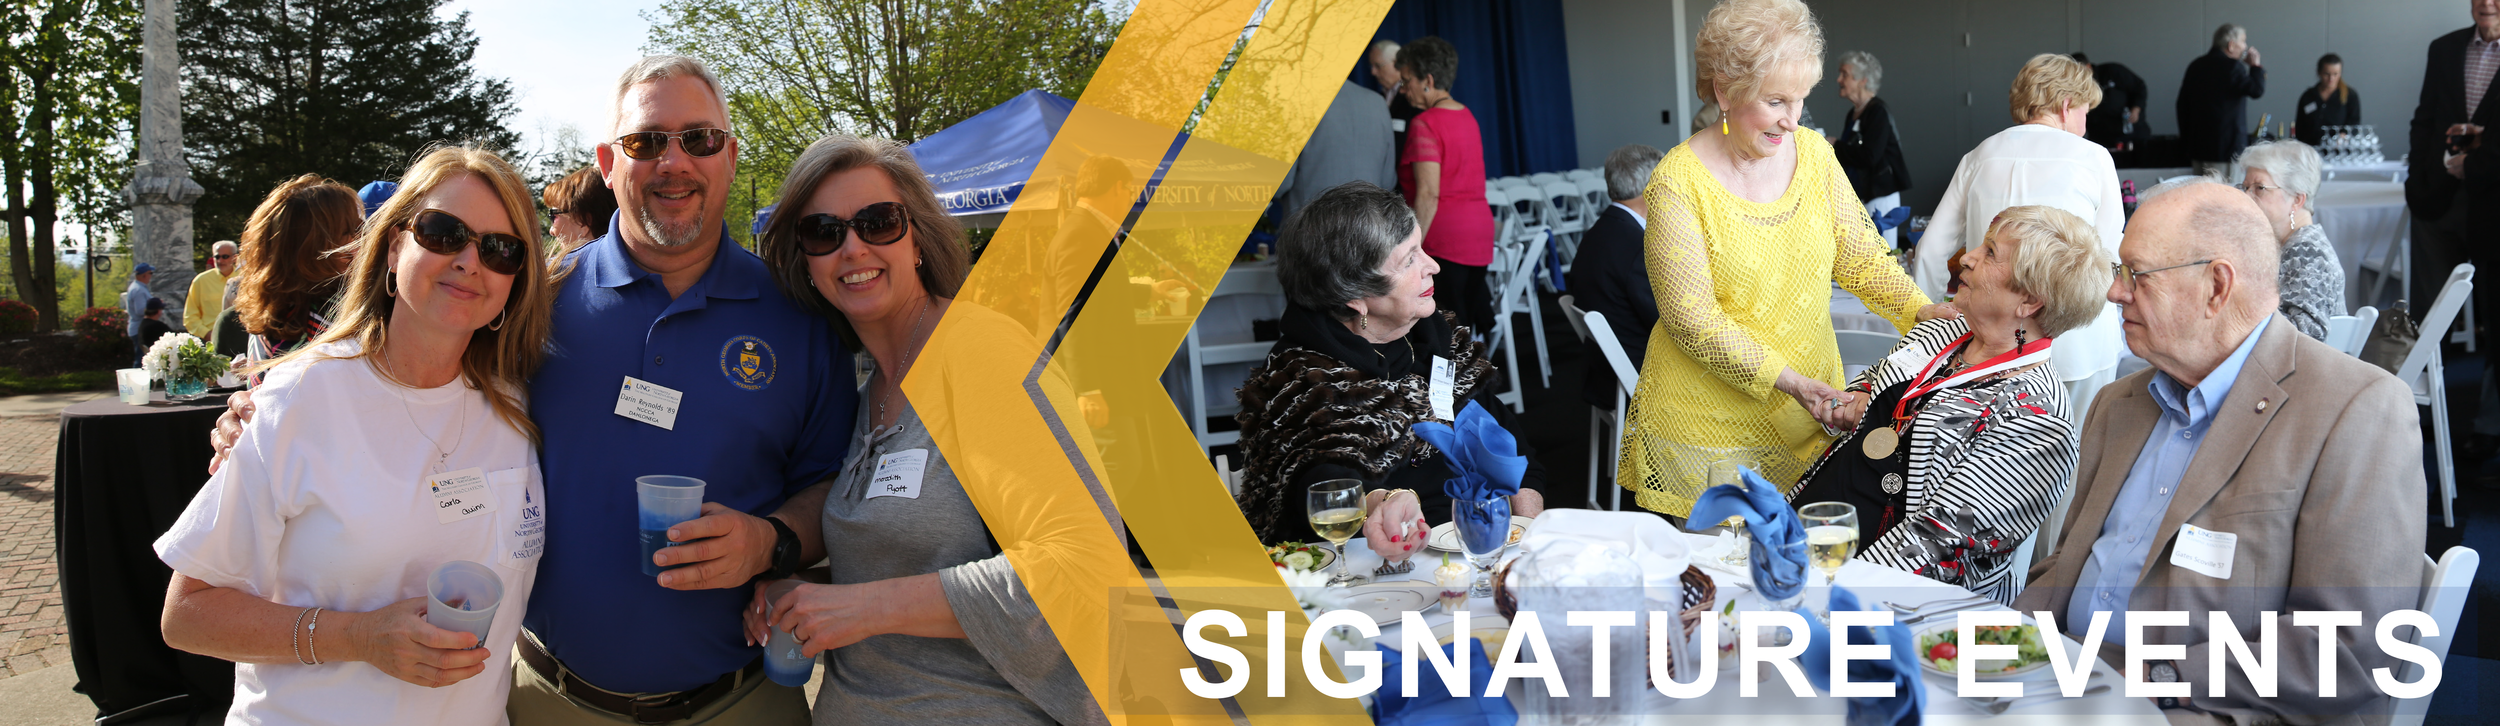 Header banner for Signature Events: First image shows a group of Alumni members holding their cups at an Alumni gathering. The second image shows a group of friends reuniting at an Alumni reunion.